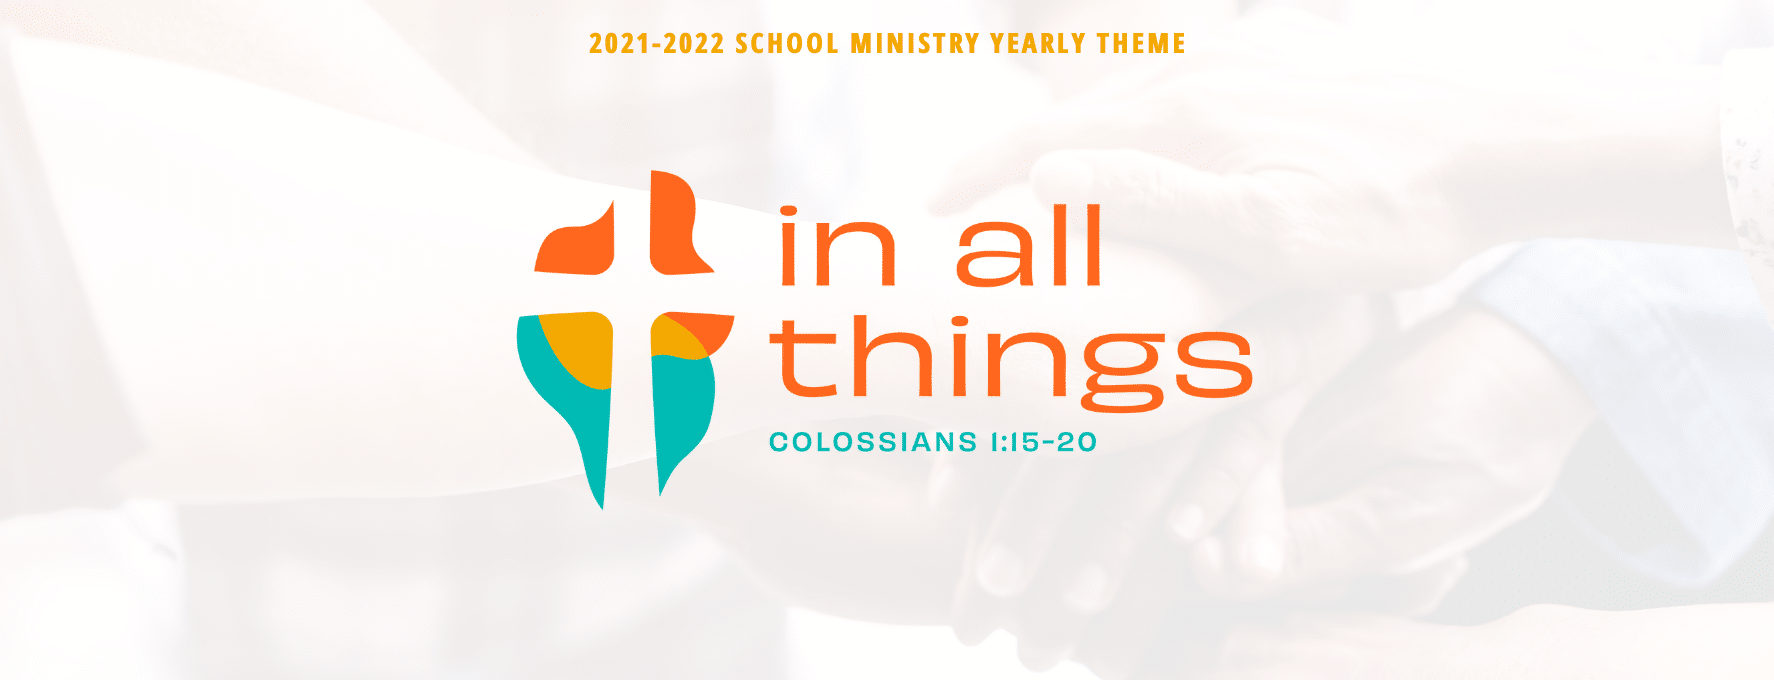 2021-2022 School Ministry Yearly Theme: In All Things - Colossians 1:15-20